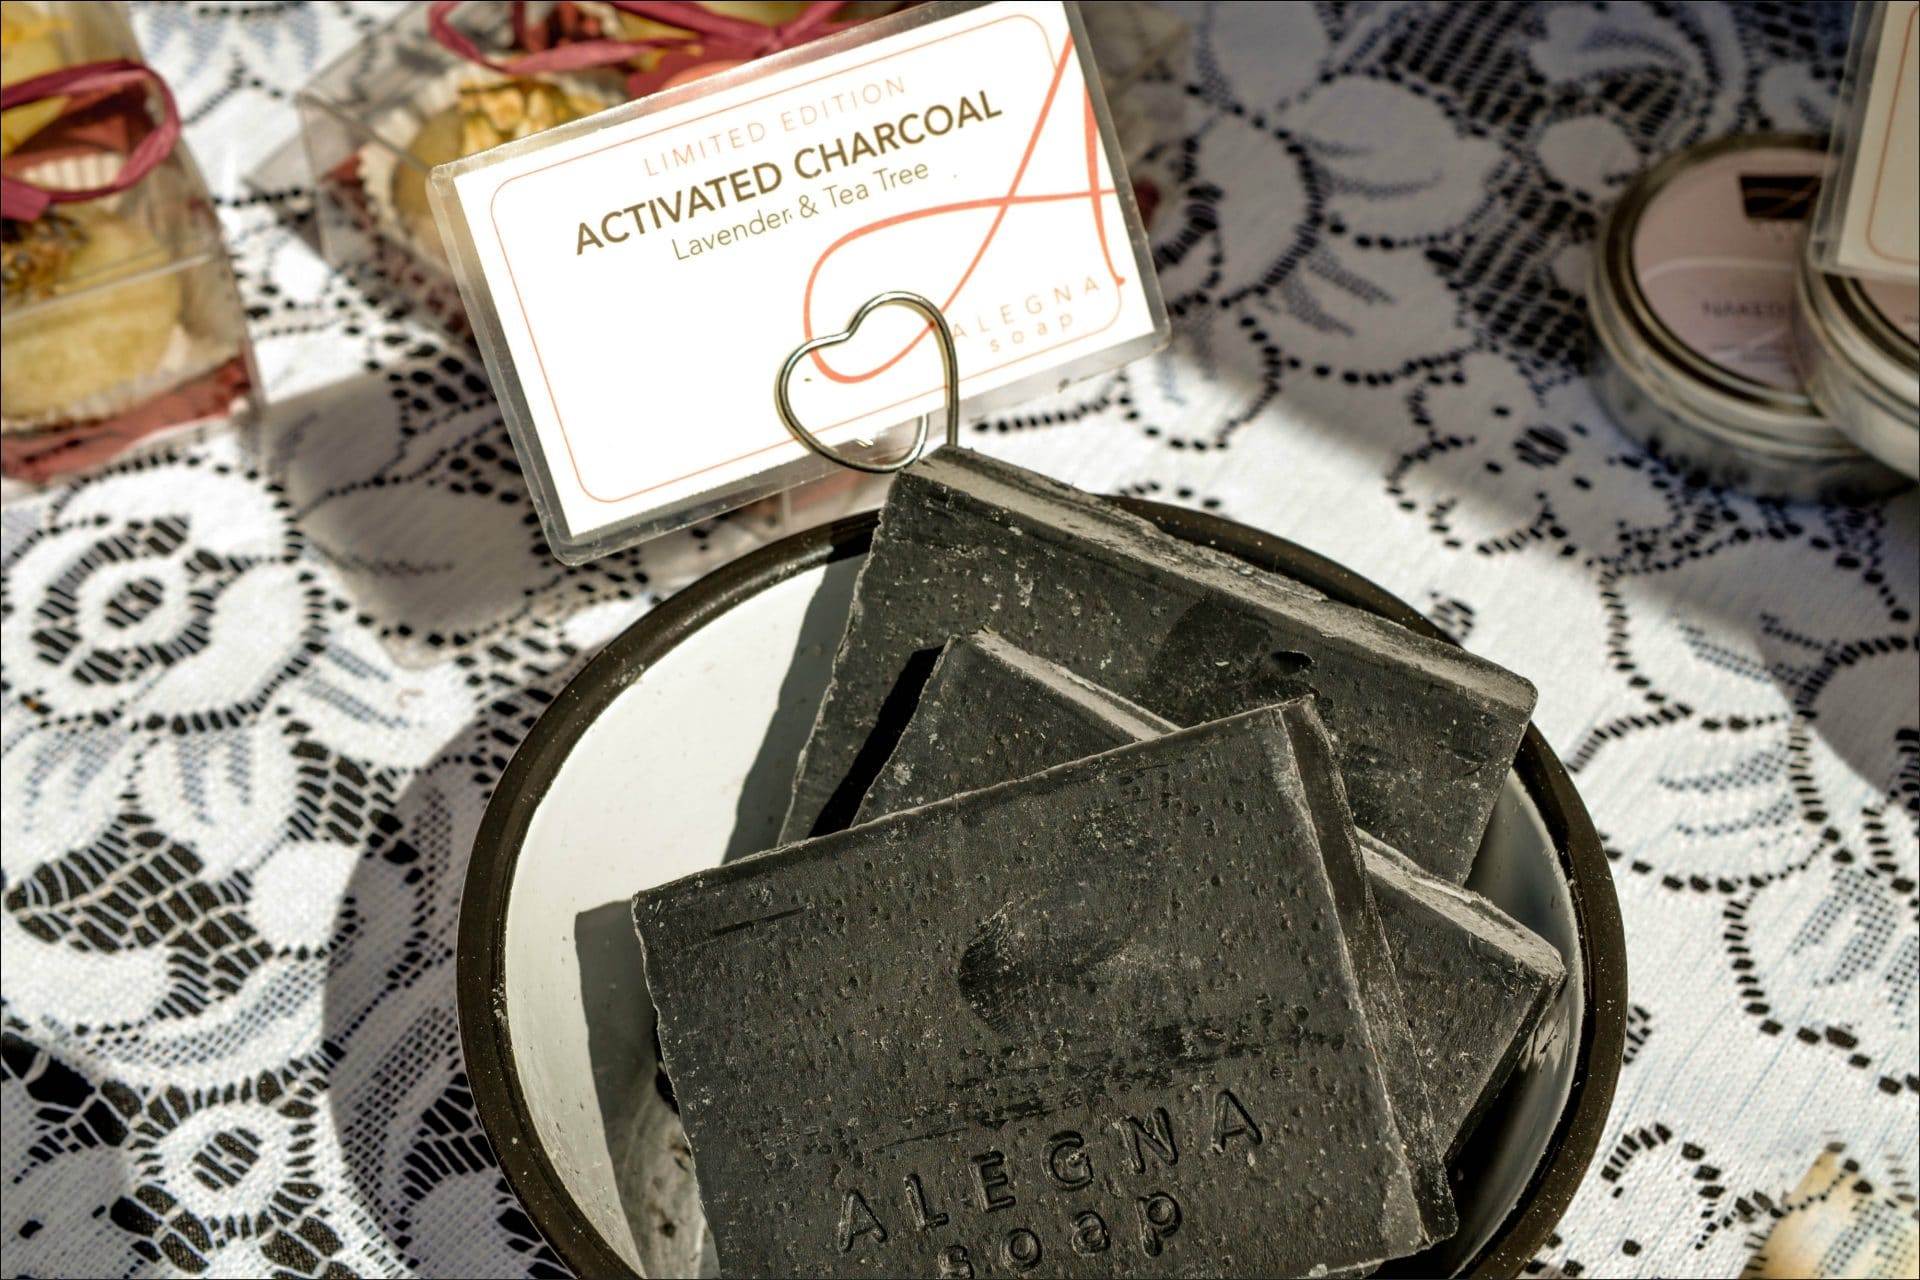 Activated Charcoal Soap – Photo Friday